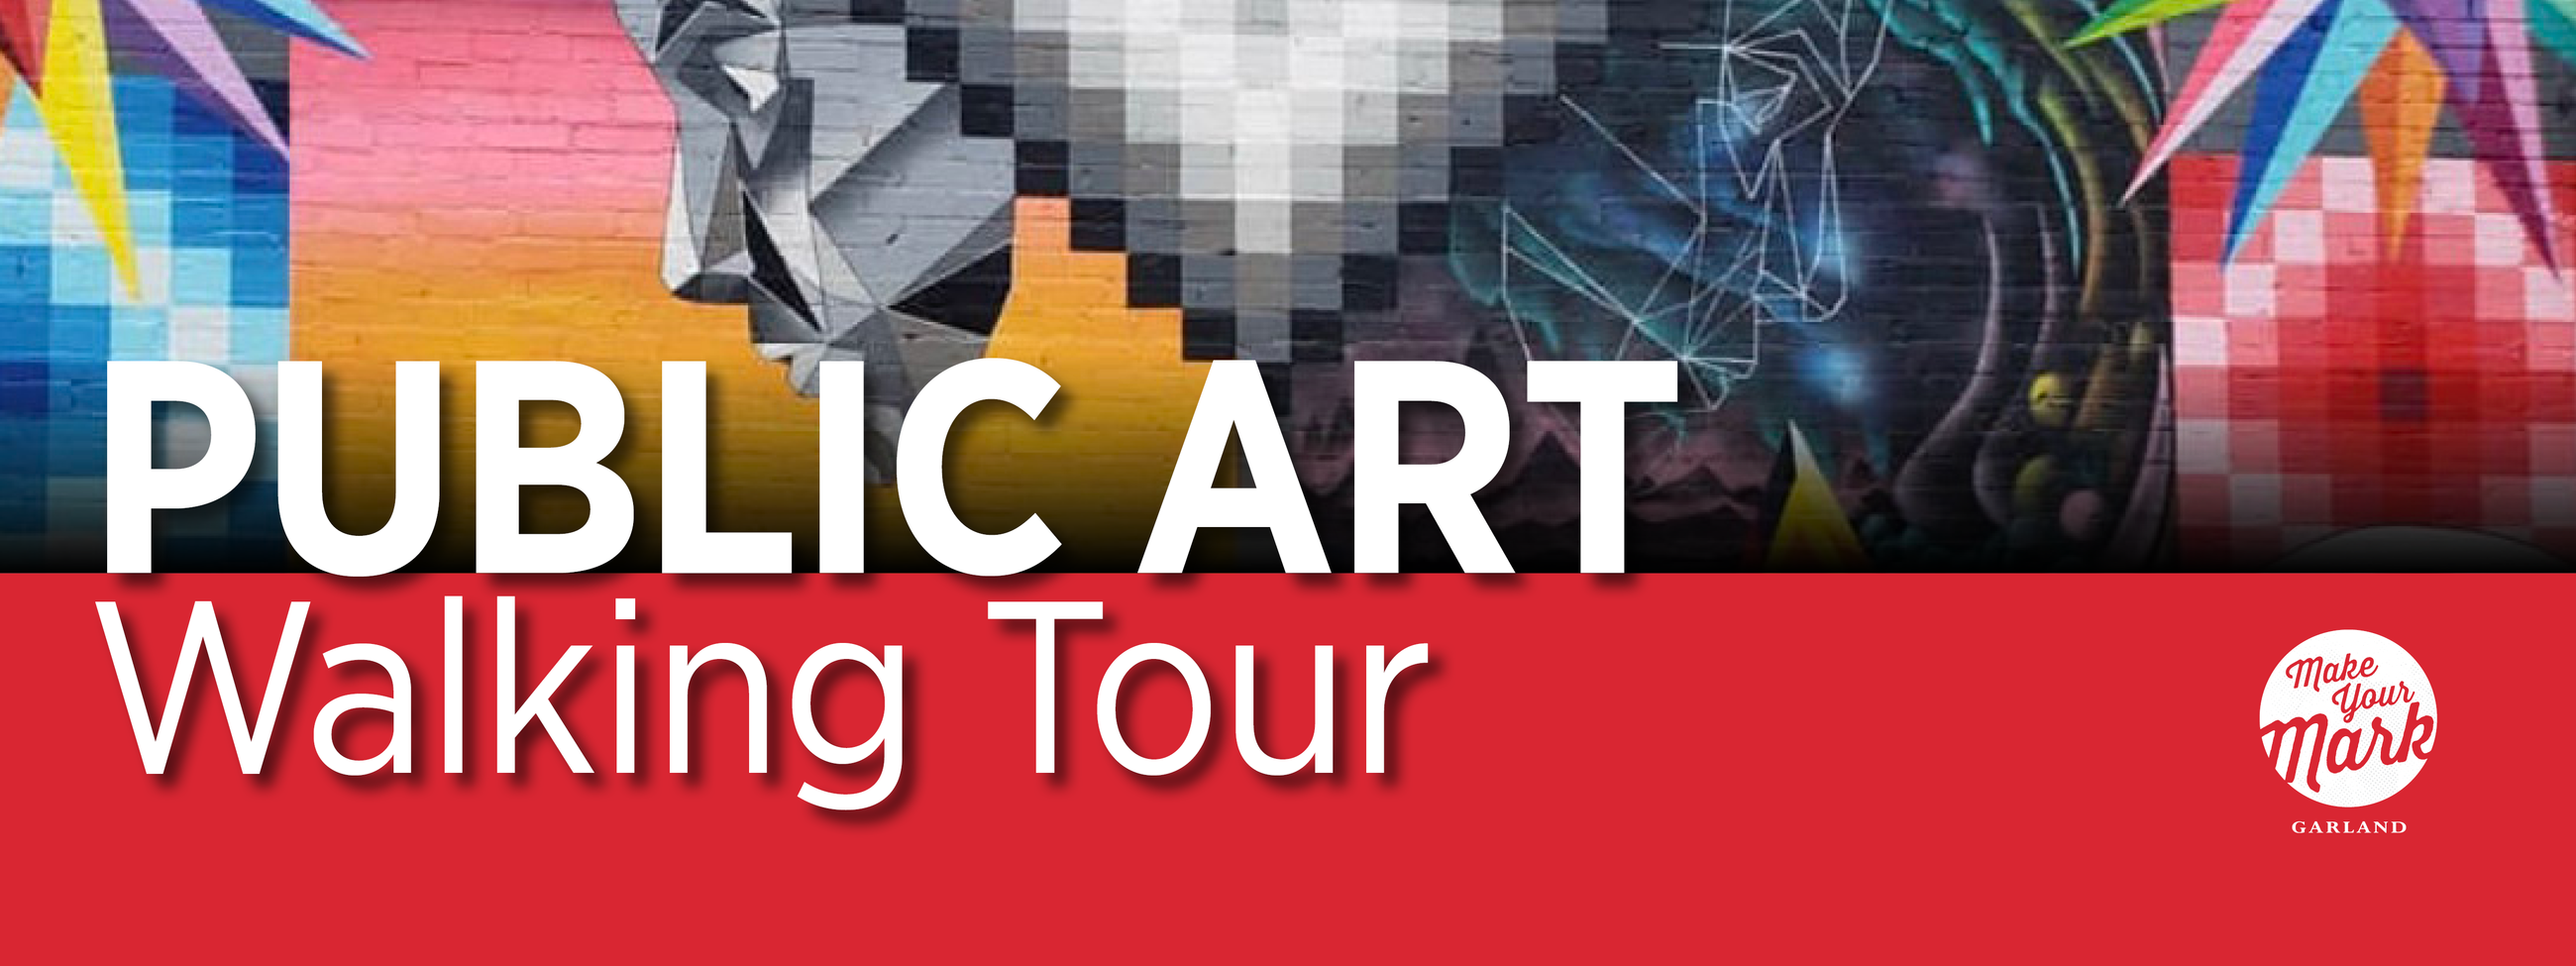 Public Art Walking Tour title artwork